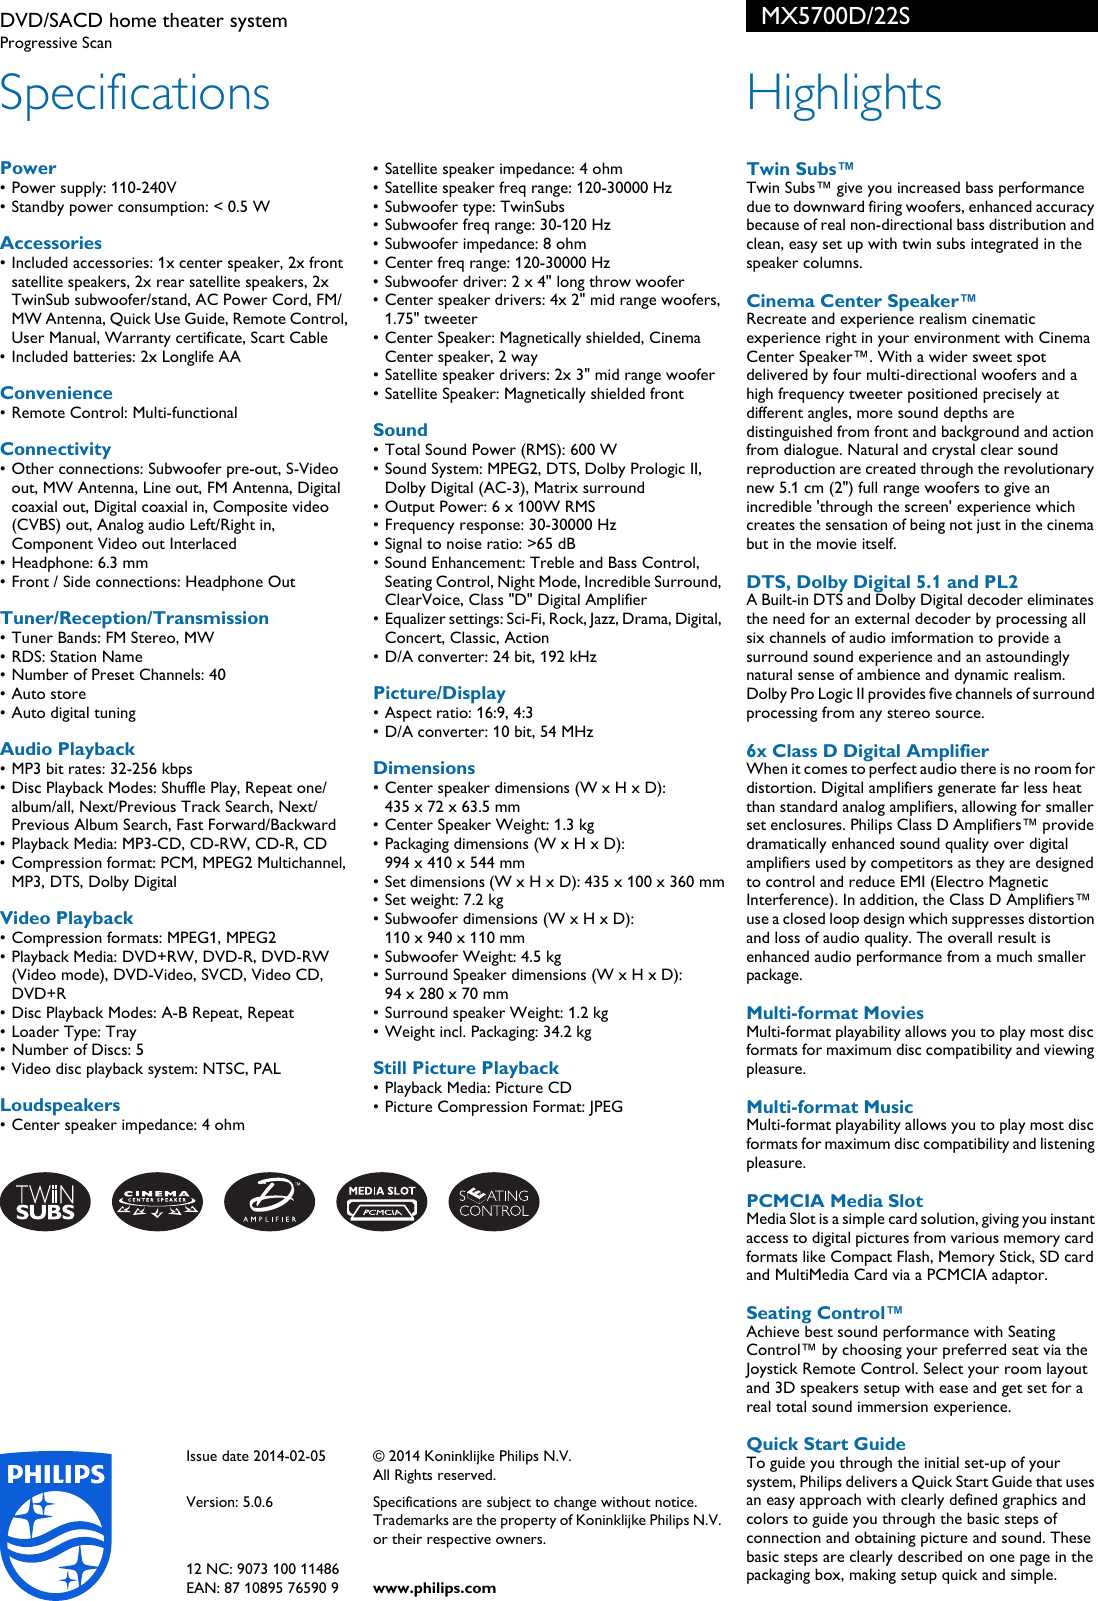 Philips Mx5700d 22s Dvd Sacd Home Theater System Voldik Pss Wiring Diagram Amplifier 5 1 Page 2 Of